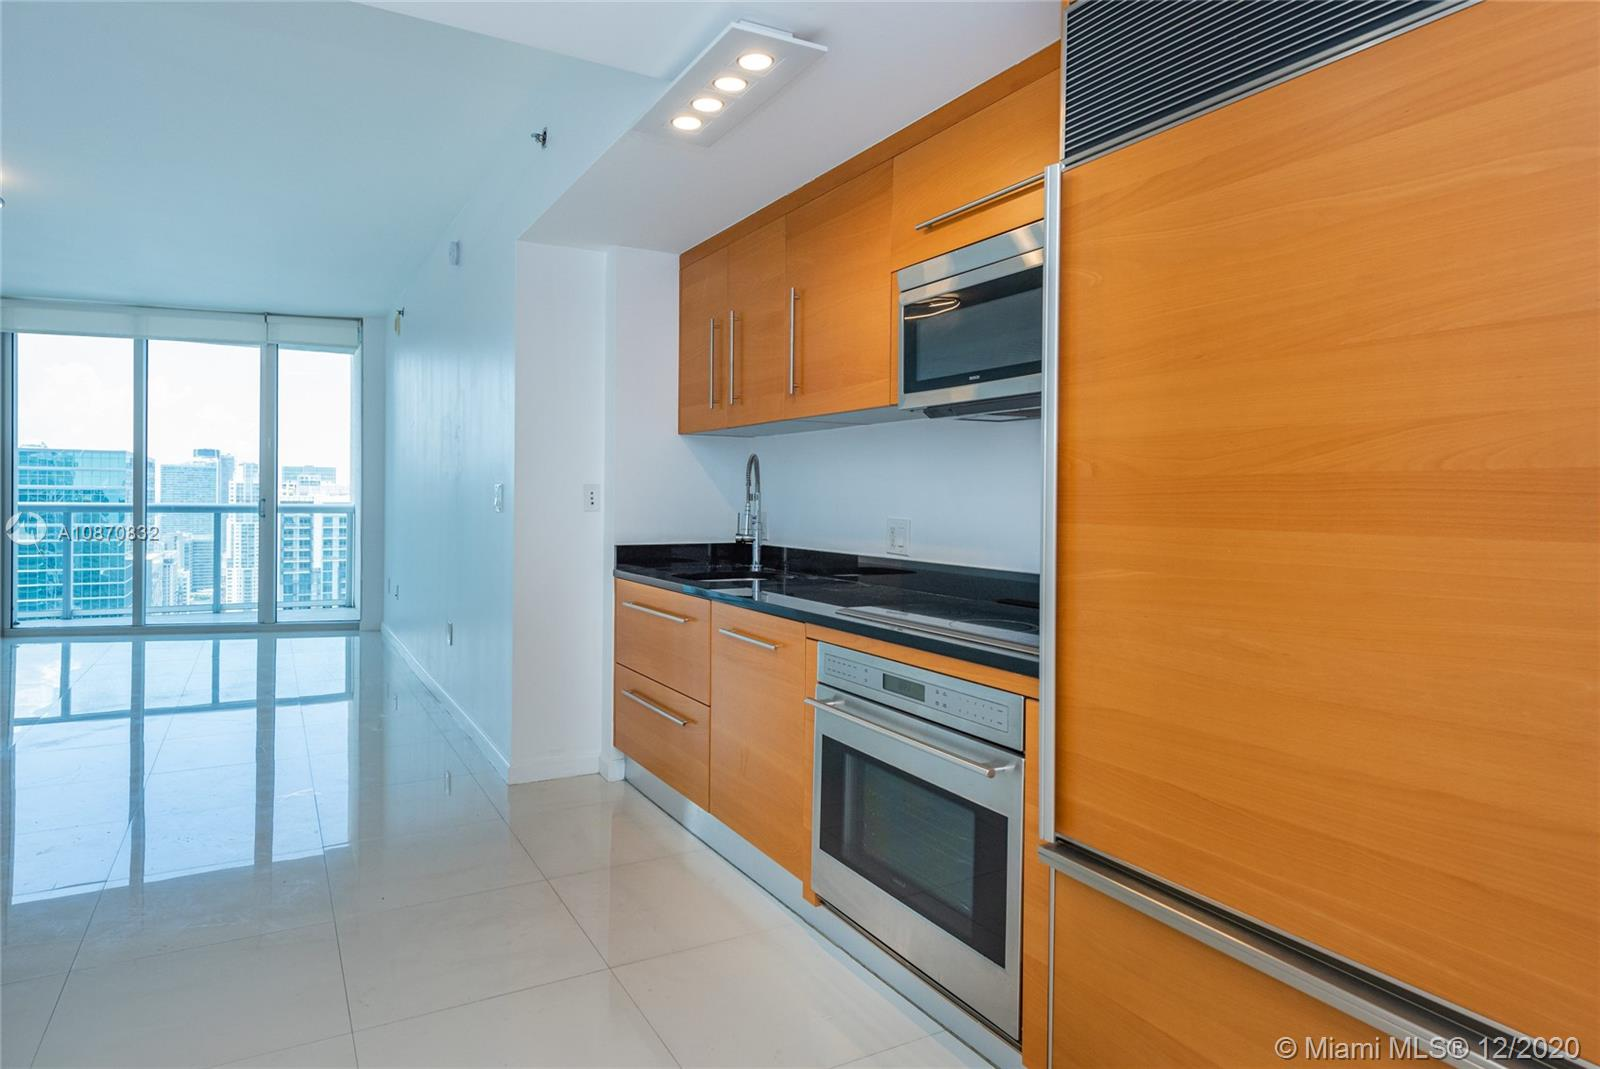 Icon Brickell 2 #4710 - 475 BRICKELL AVE #4710, Miami, FL 33131